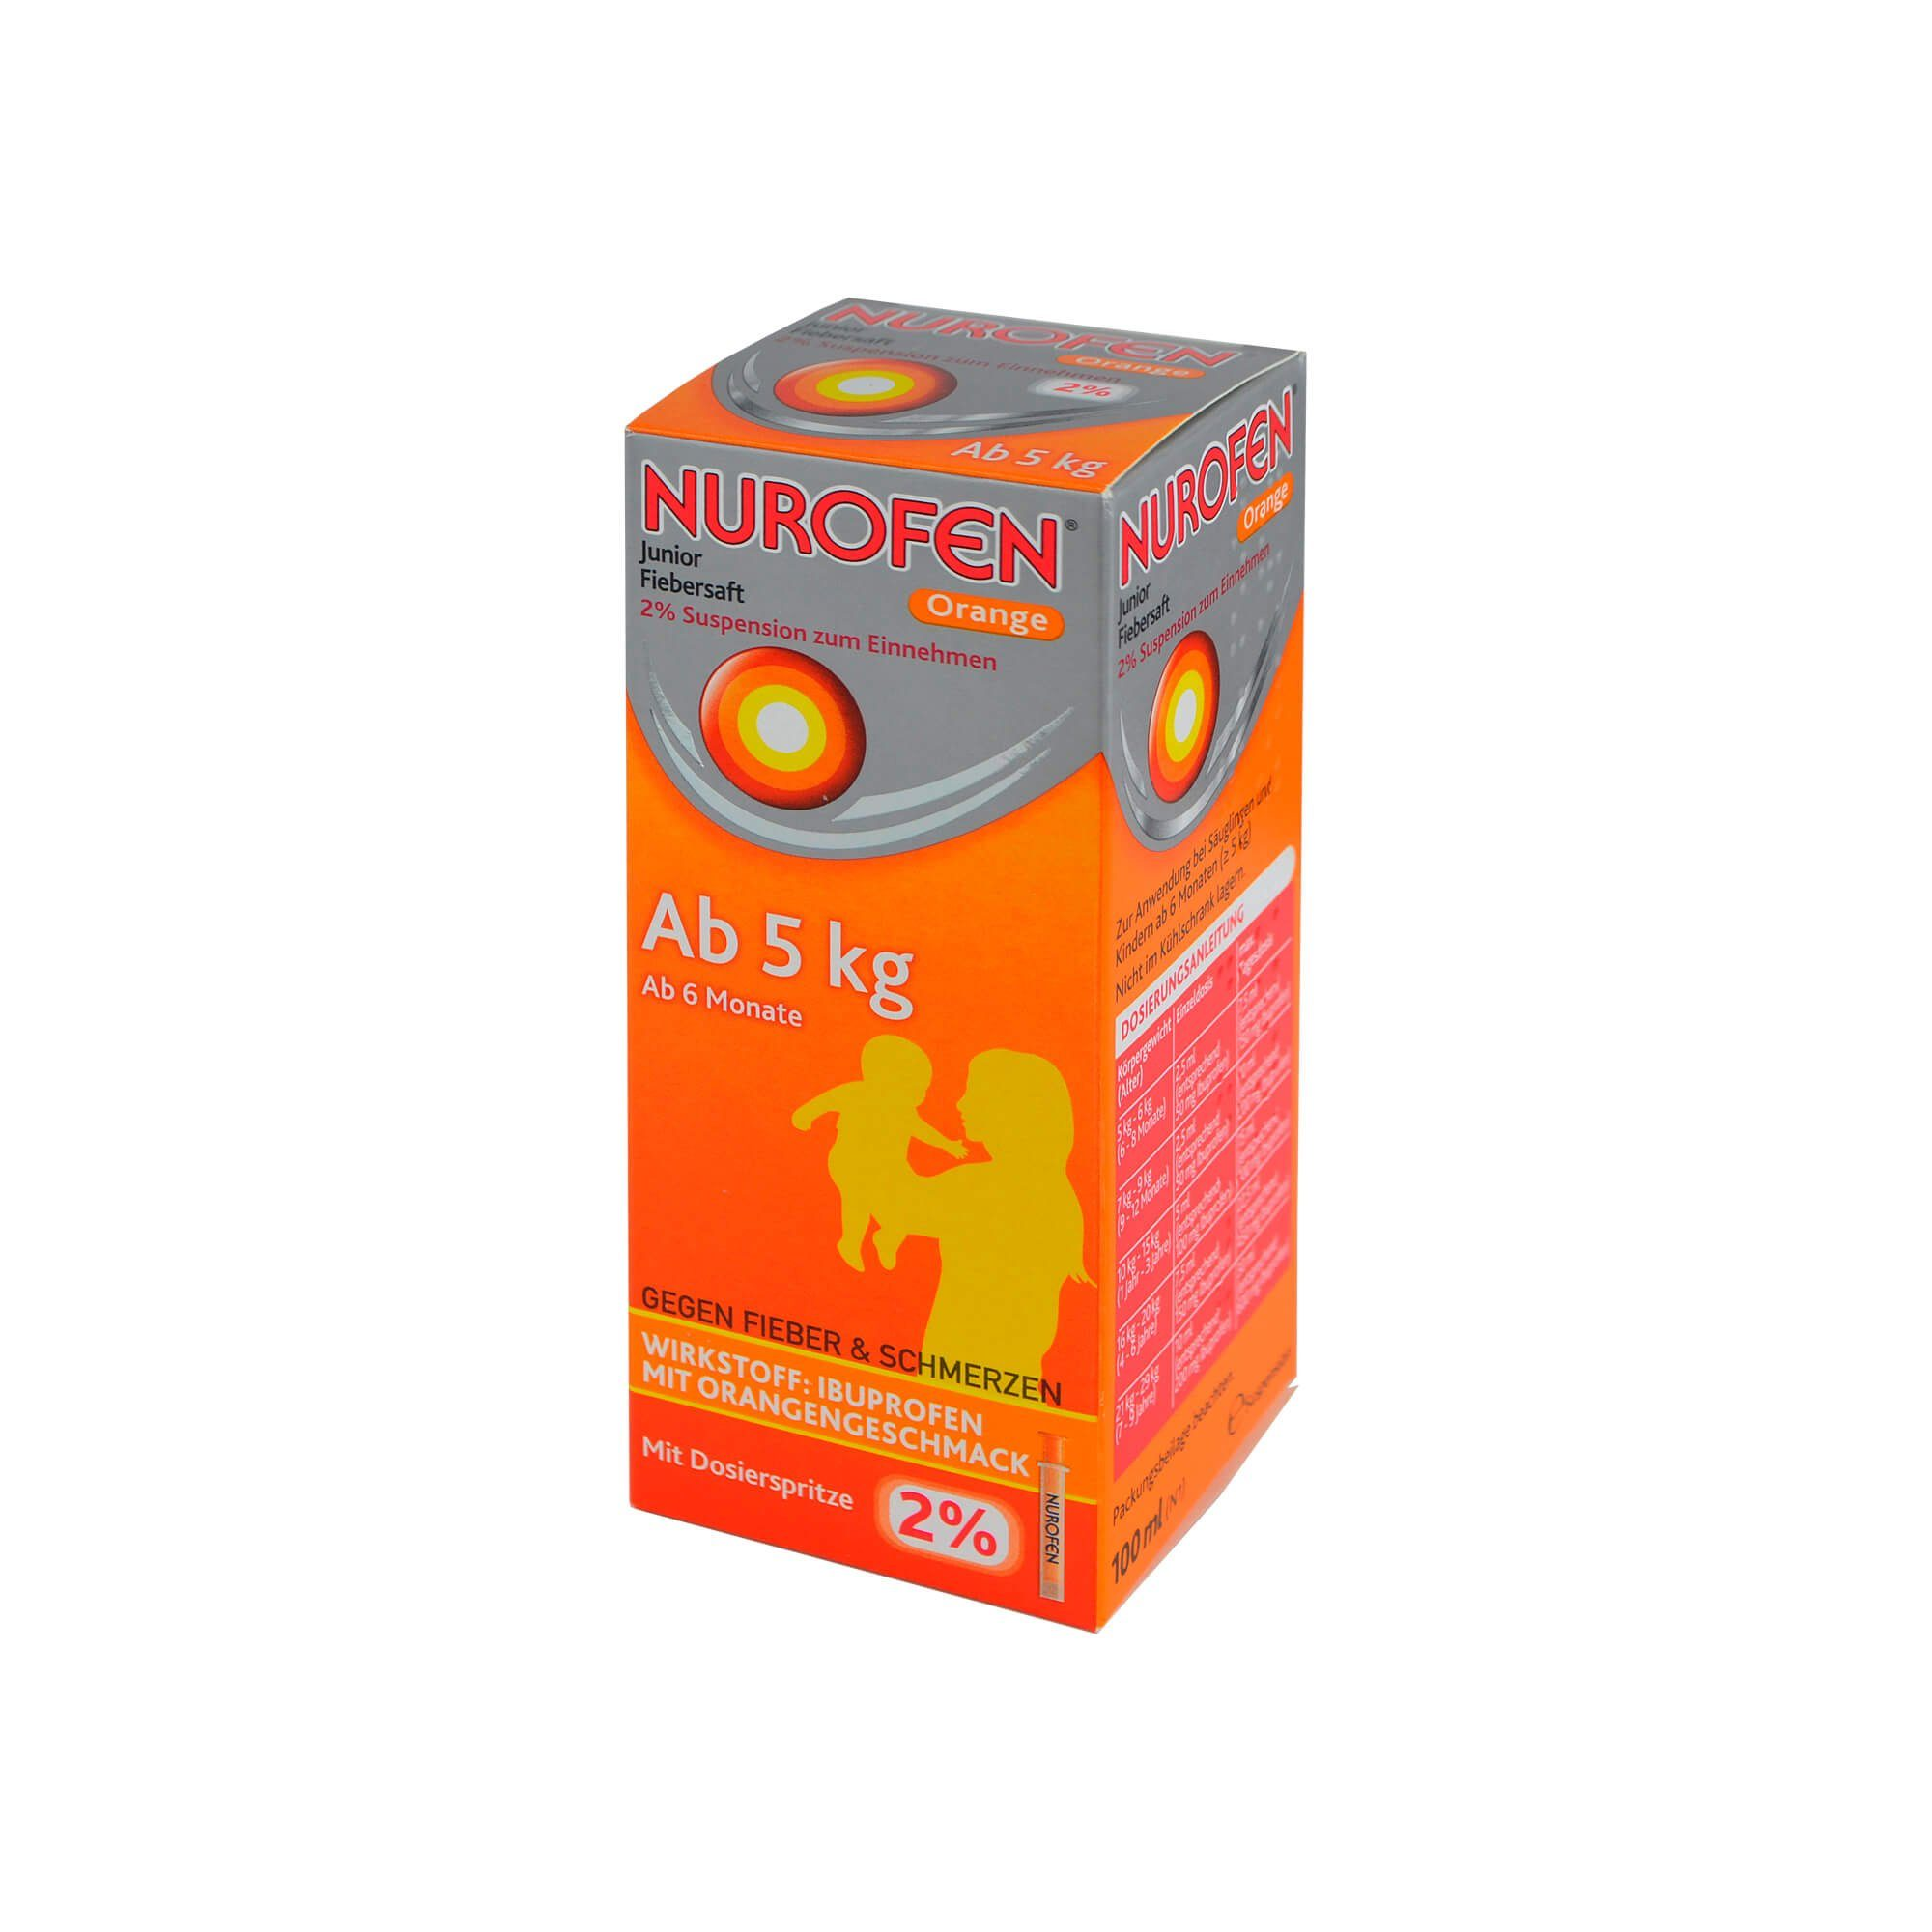 Nurofen Junior Fiebersaft Orange 2% , 100 ml